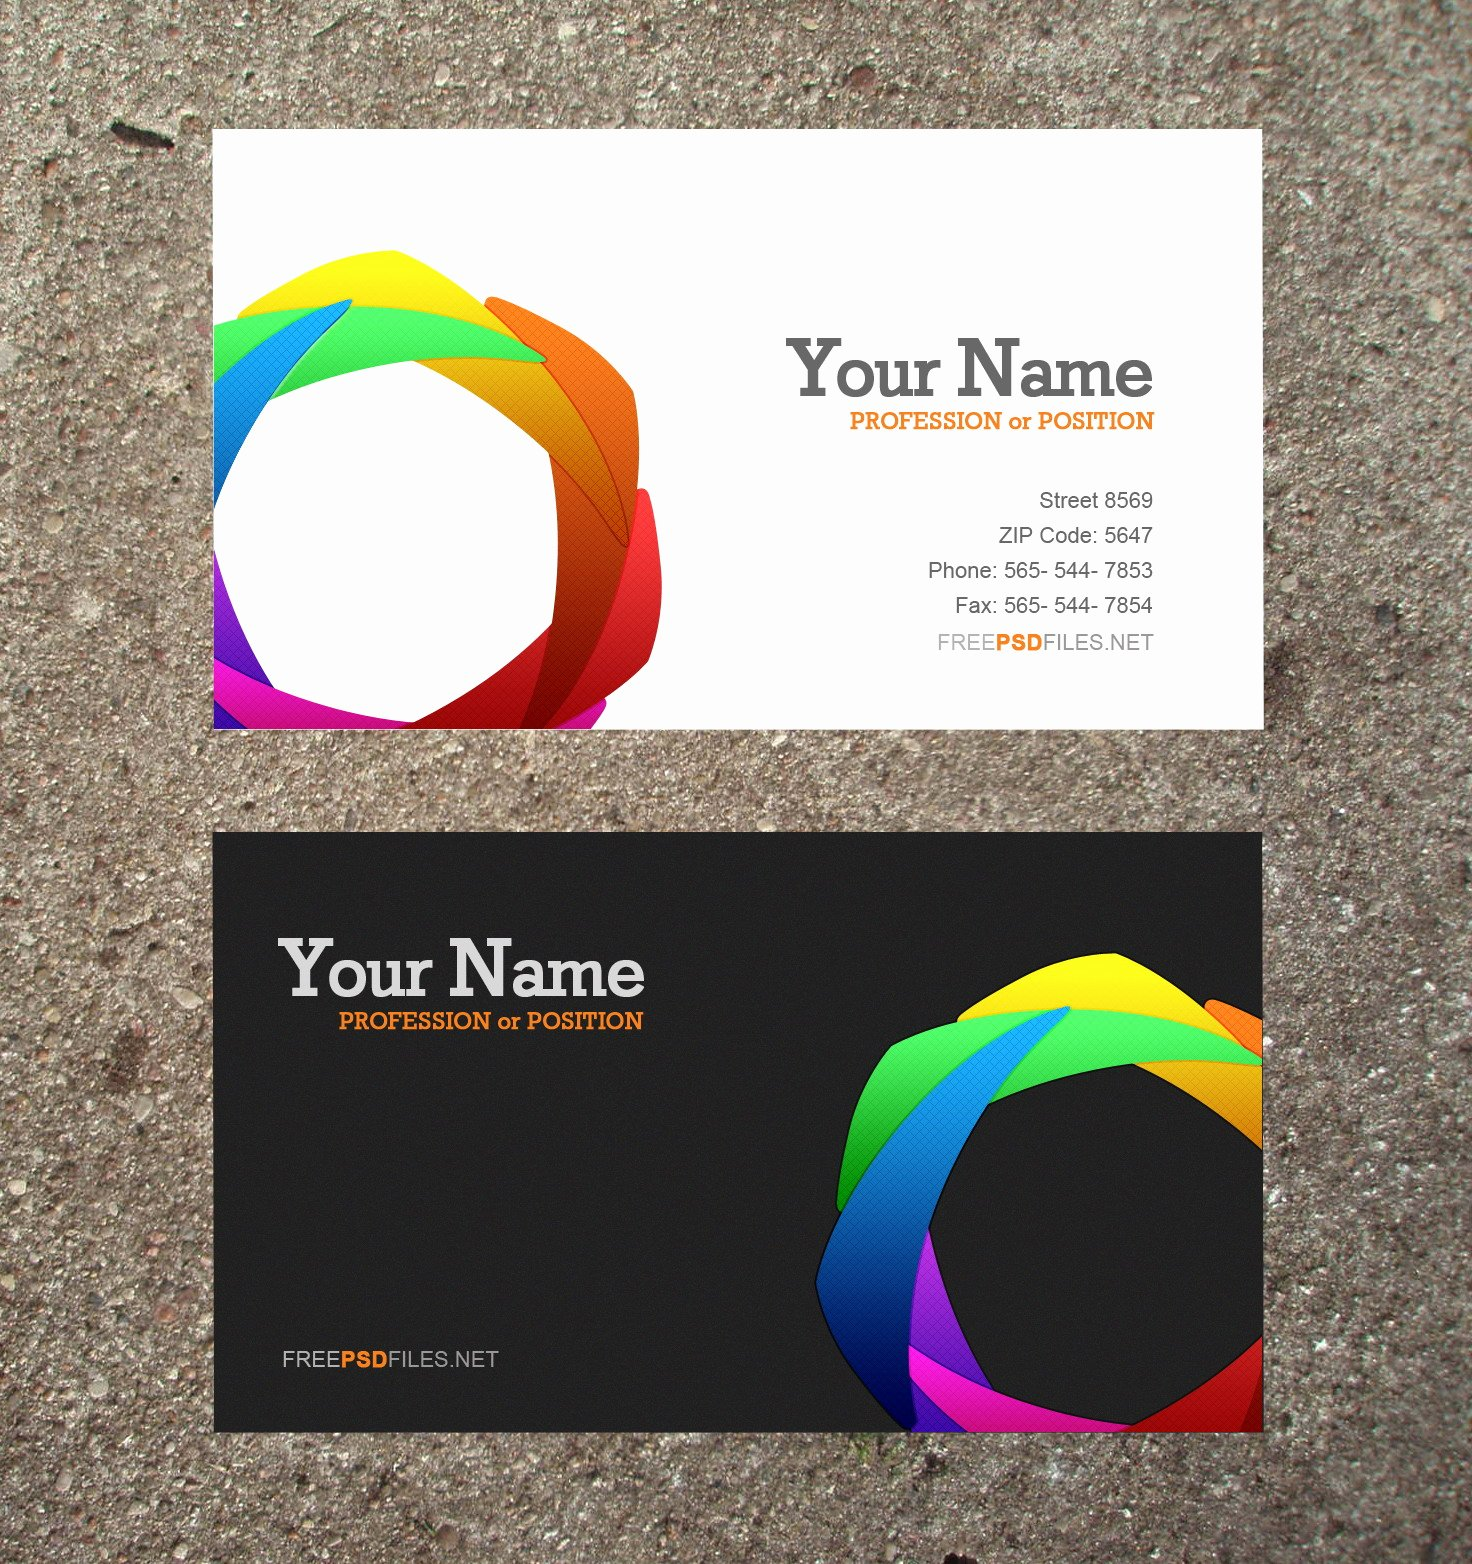 20 Free Psd Business Card Templates Free Business